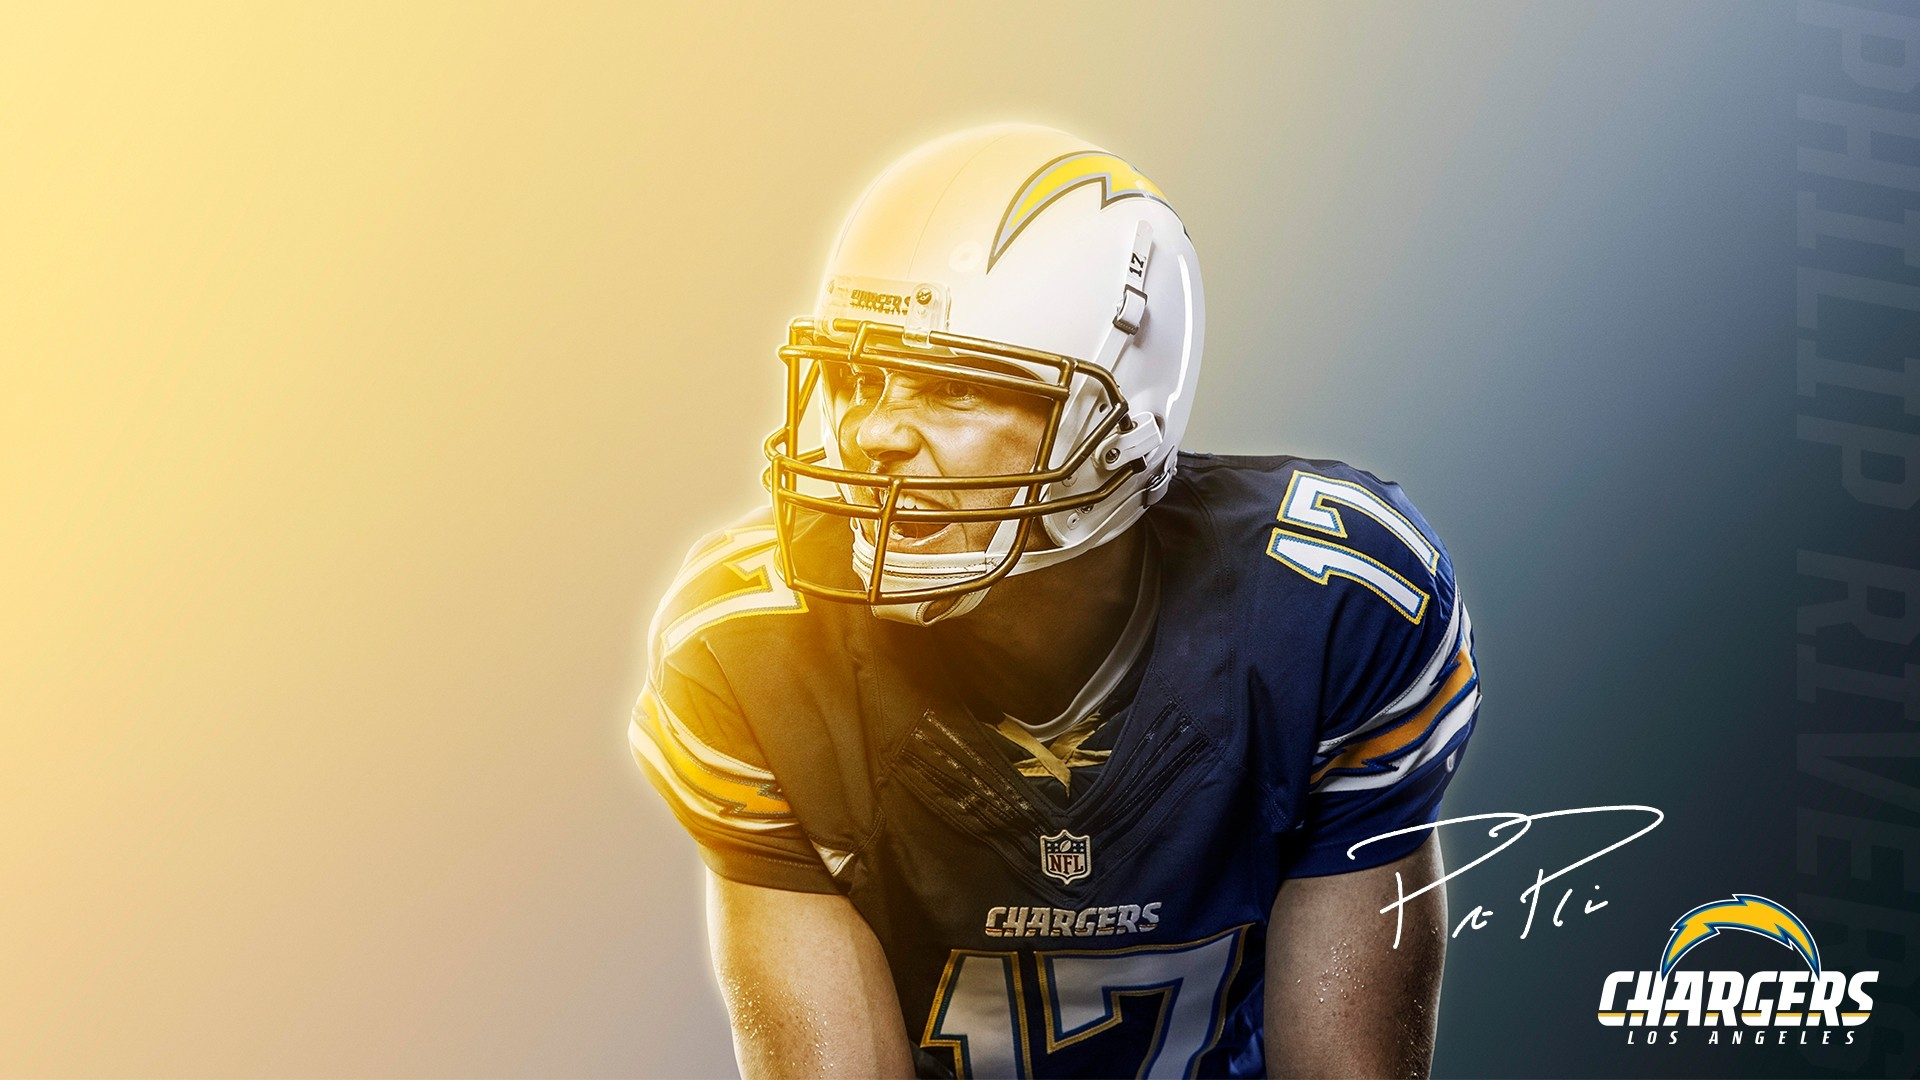 Chargers Wallpaper theme